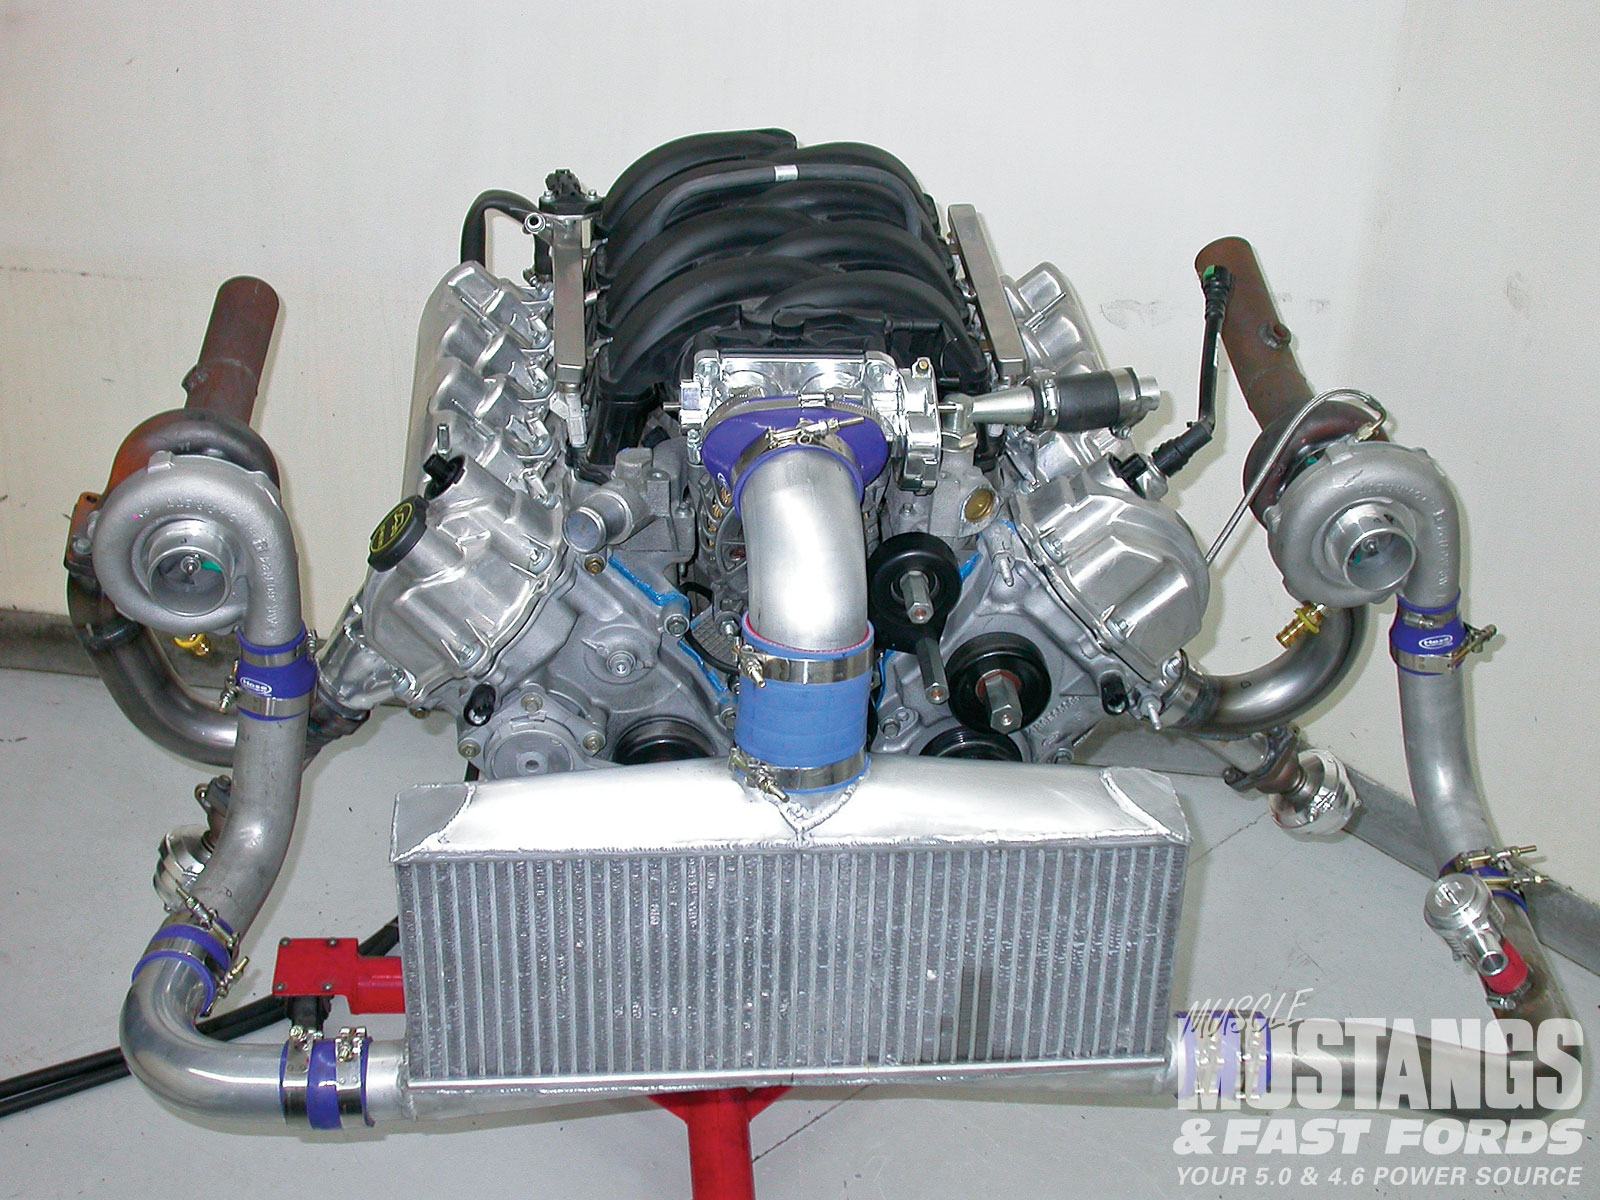 Mmfp 1005 01 O+2005 Ford Mustang Gt+hp Performance Twin Turbo Kit